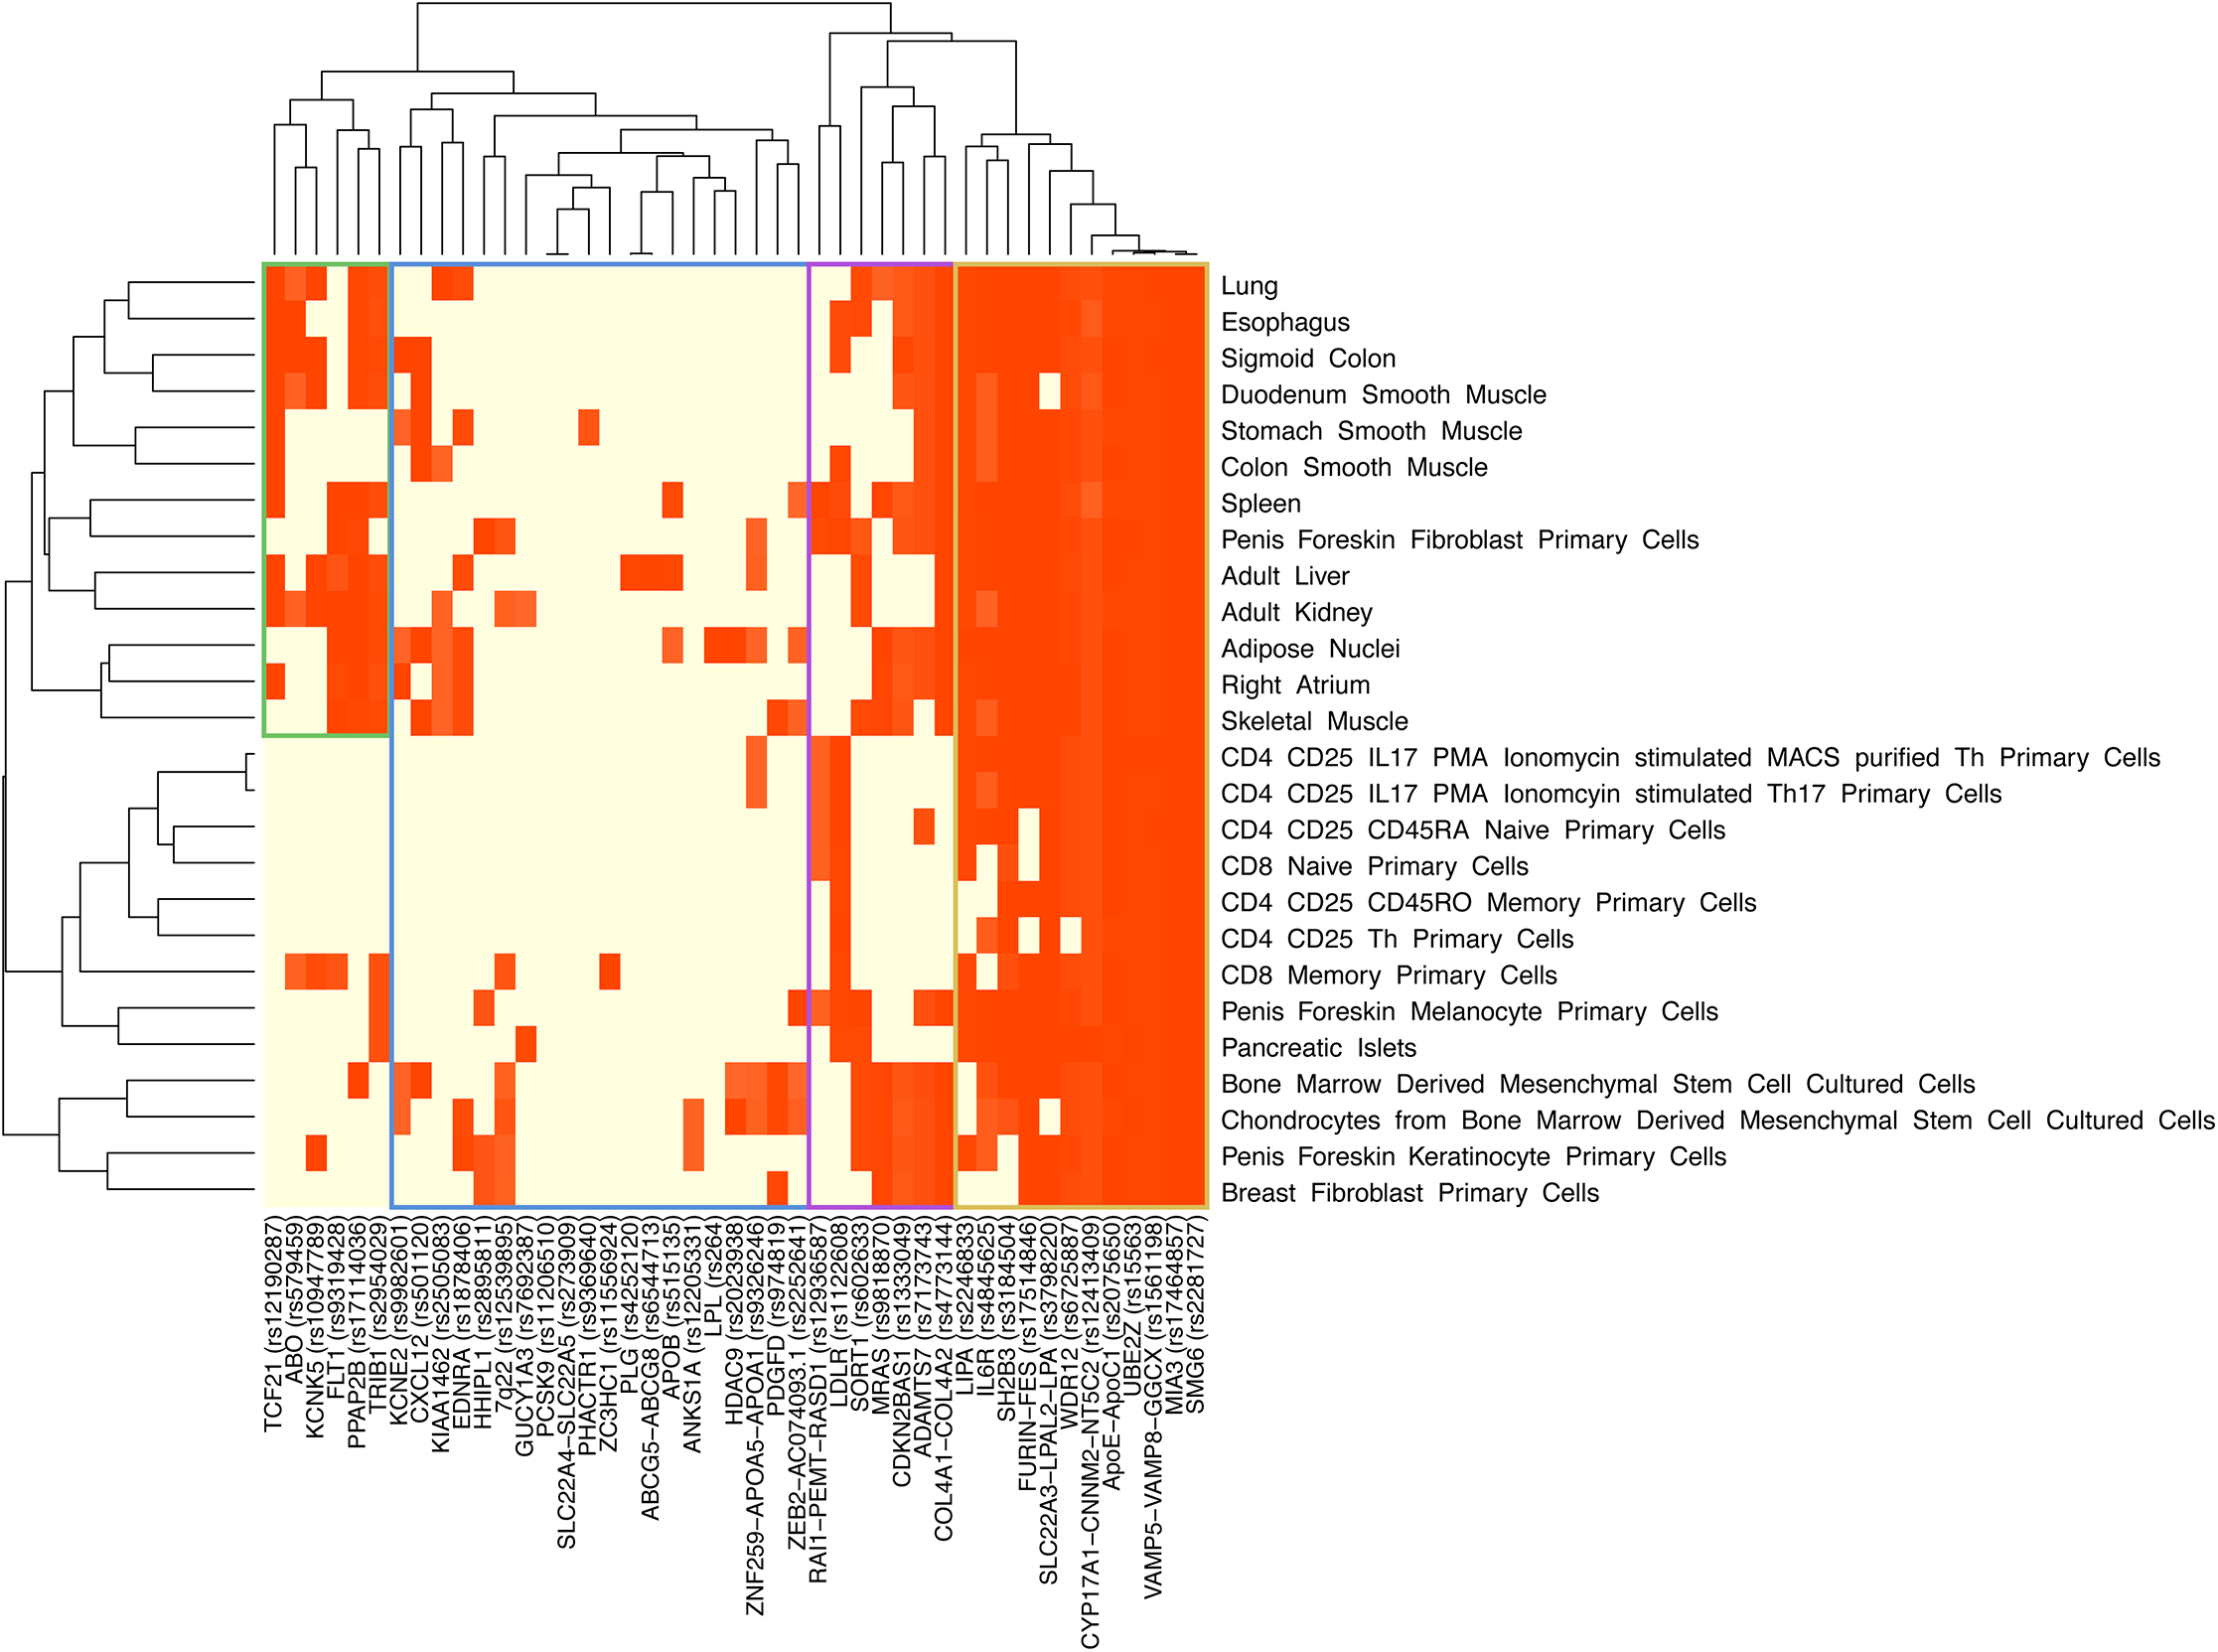 Hierarchical clustering of 45 MI/CAD GWAS SNPs and specific cell types for a histone modification mark (H3K27ac).